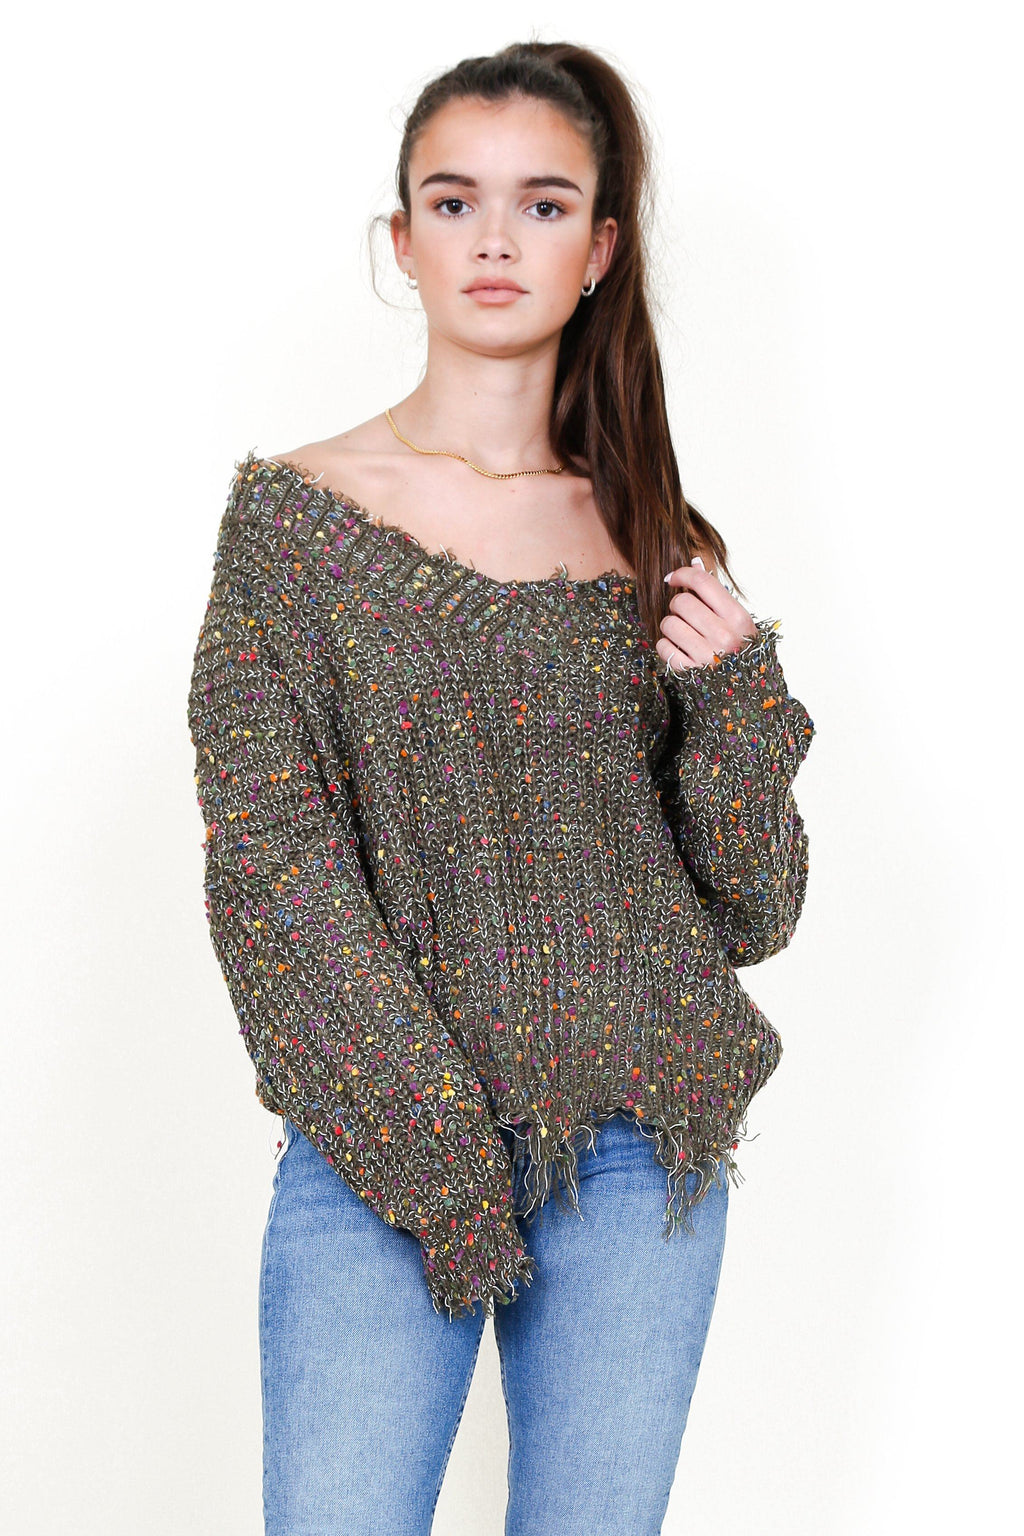 Confetti Fun Sweater - Olive